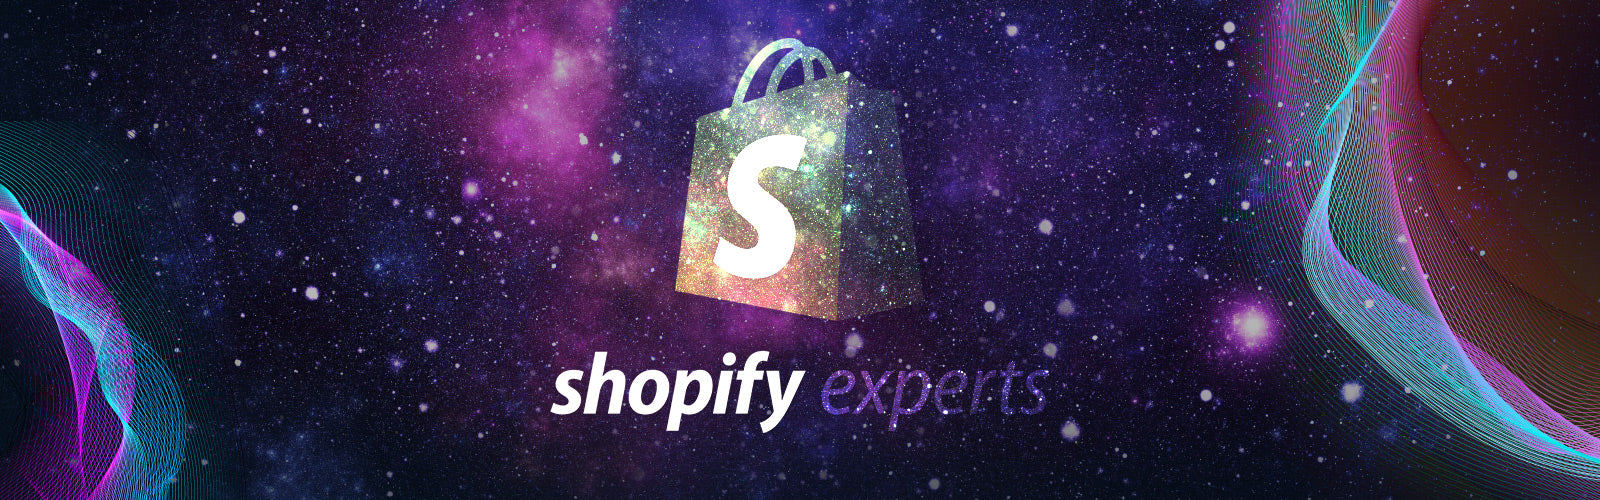 Realm - Shopify Experts St. Paul, MN Shopify Experts, Shopify Expert